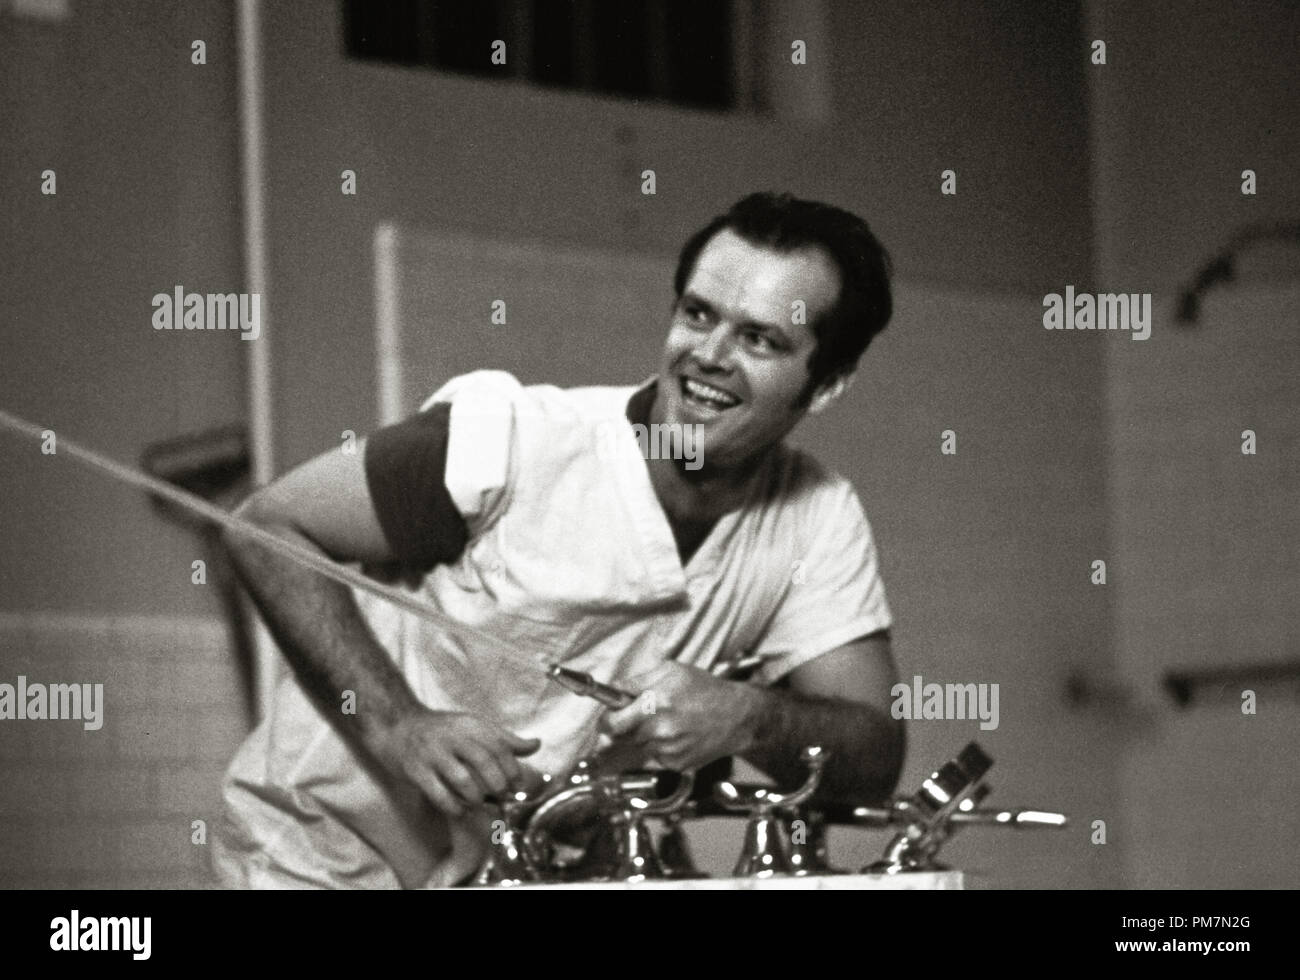 Jack Nicholson, 'One Flew Over the Cuckoo's Nest' 1975 UA  File Reference # 31202_636THA - Stock Image